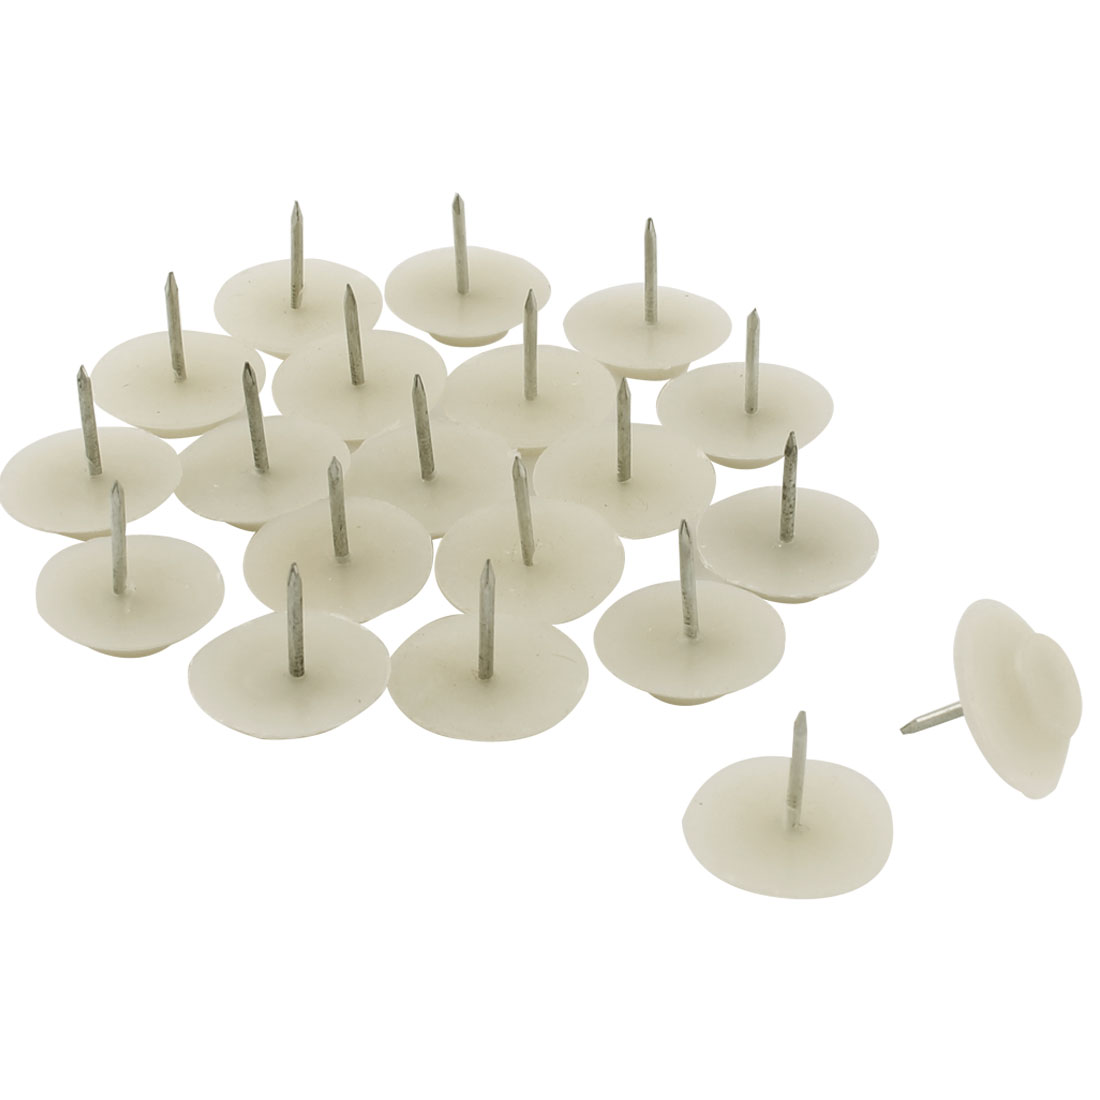 Furniture Chair Table Plastic Non-slip Floor Protector Nails Beige 1.8cm Dia 20pcs